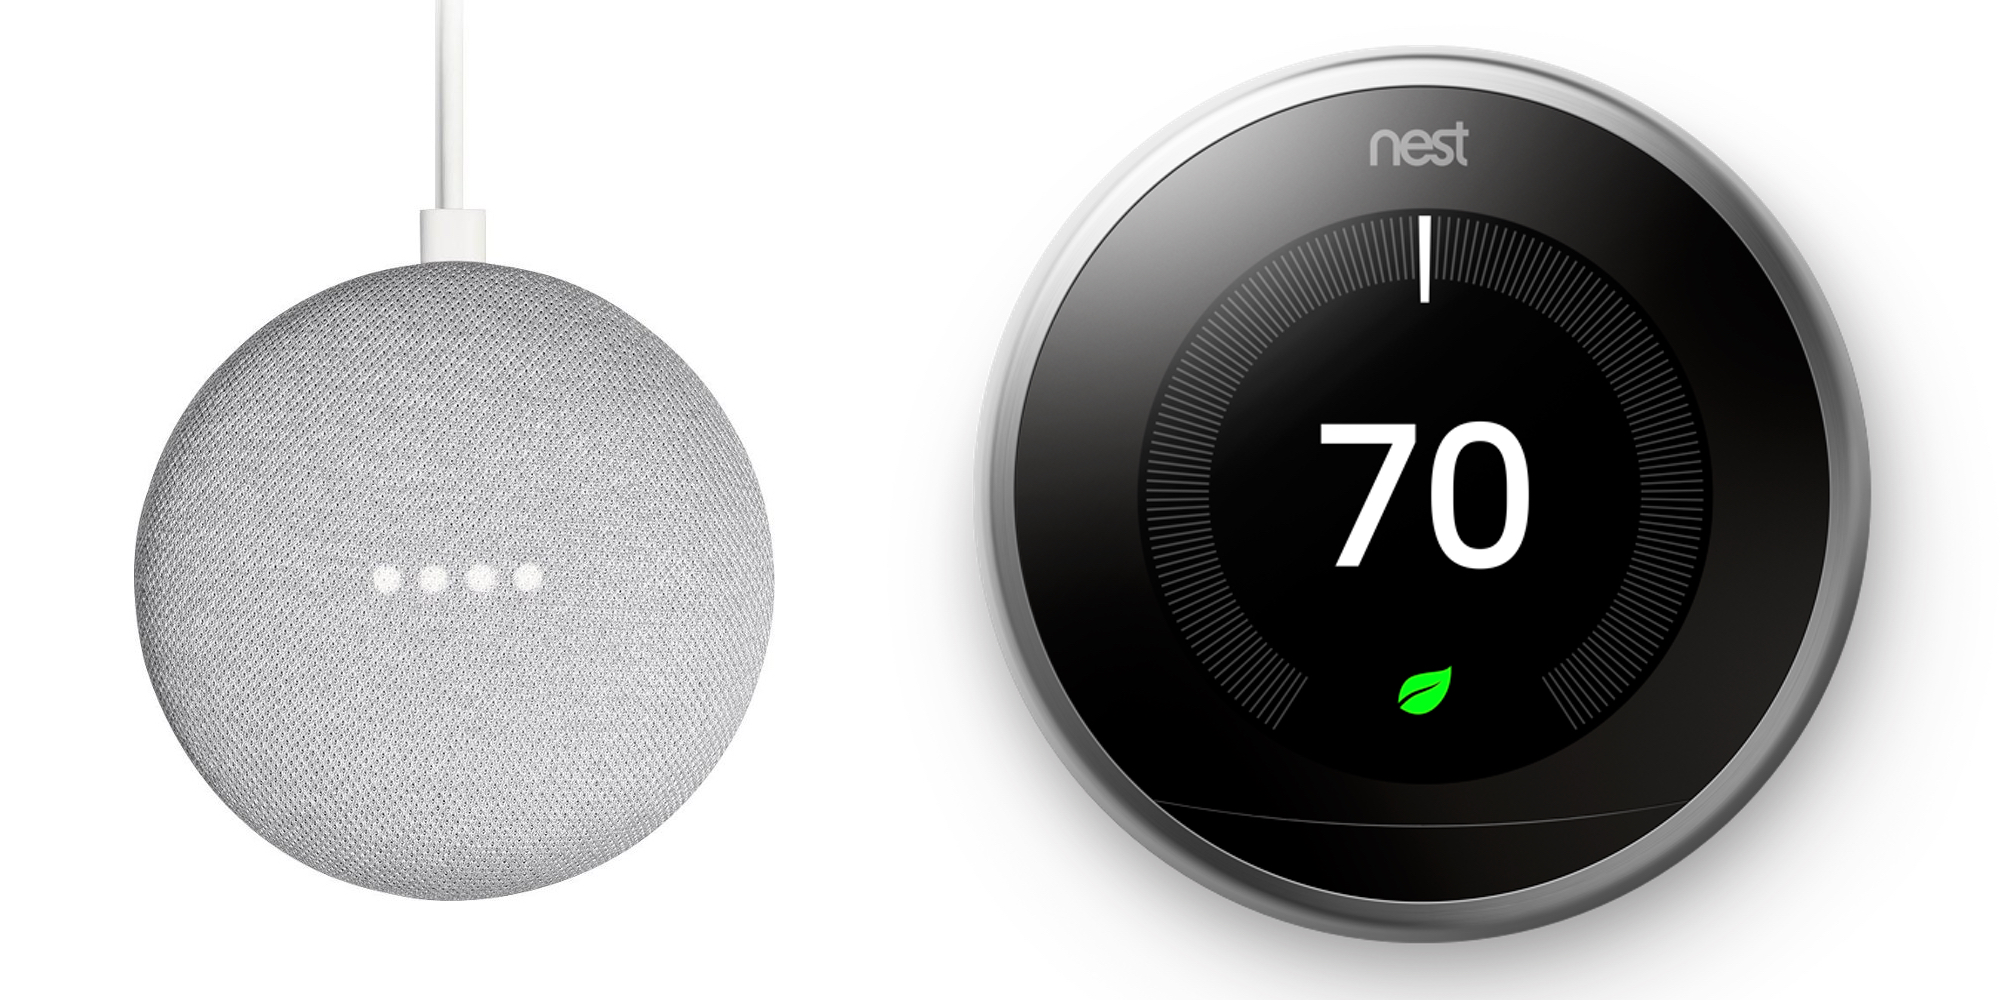 Pick up two Google Home Minis for $58 or bundled with Nest Smart Thermostat at $199